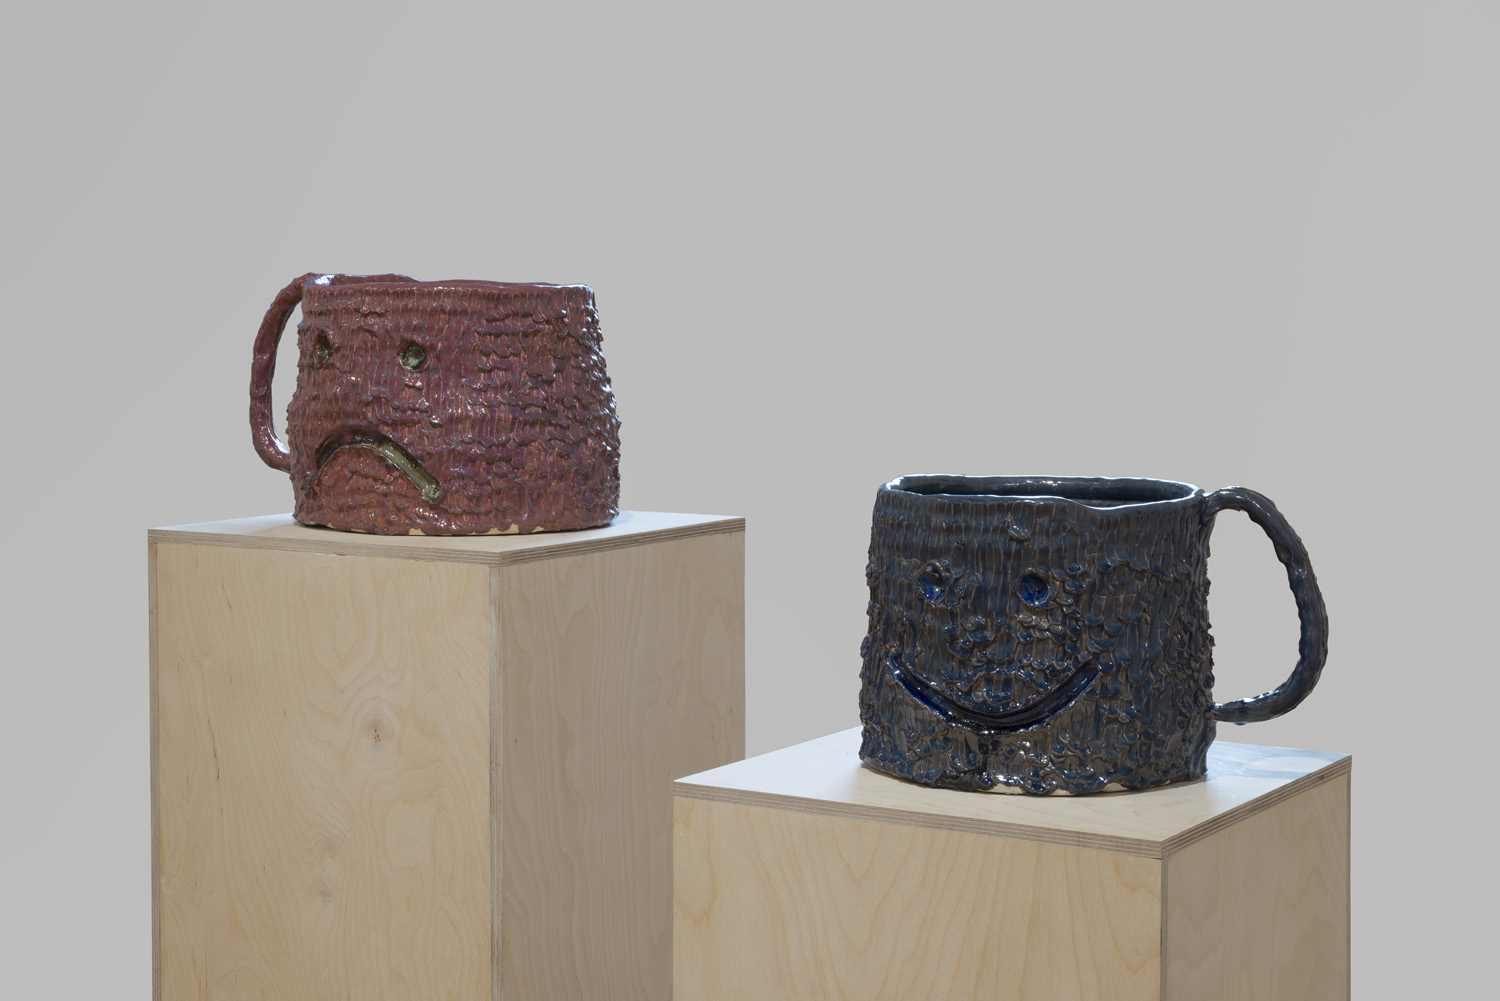 Both Ends (2016), raku and lustre glaze on ceramic, 17 x 12 x 12 and 16 x 10 x 10 inches